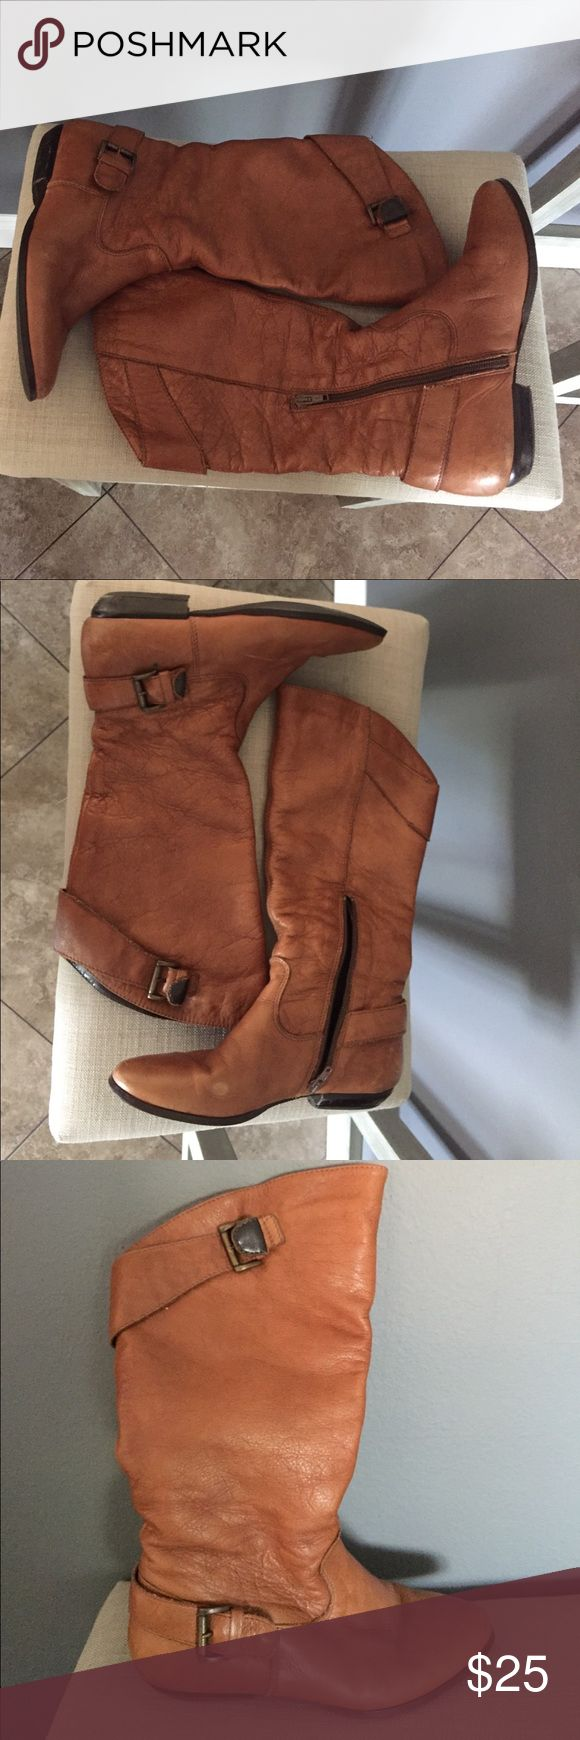 Faux Leather Brown Aldo Boots Used brown ALDO boots. Bottom of shoe show a size 36, but they fit me perfectly and I'm a US size 6.5. Aldo Shoes Ankle Boots & Booties